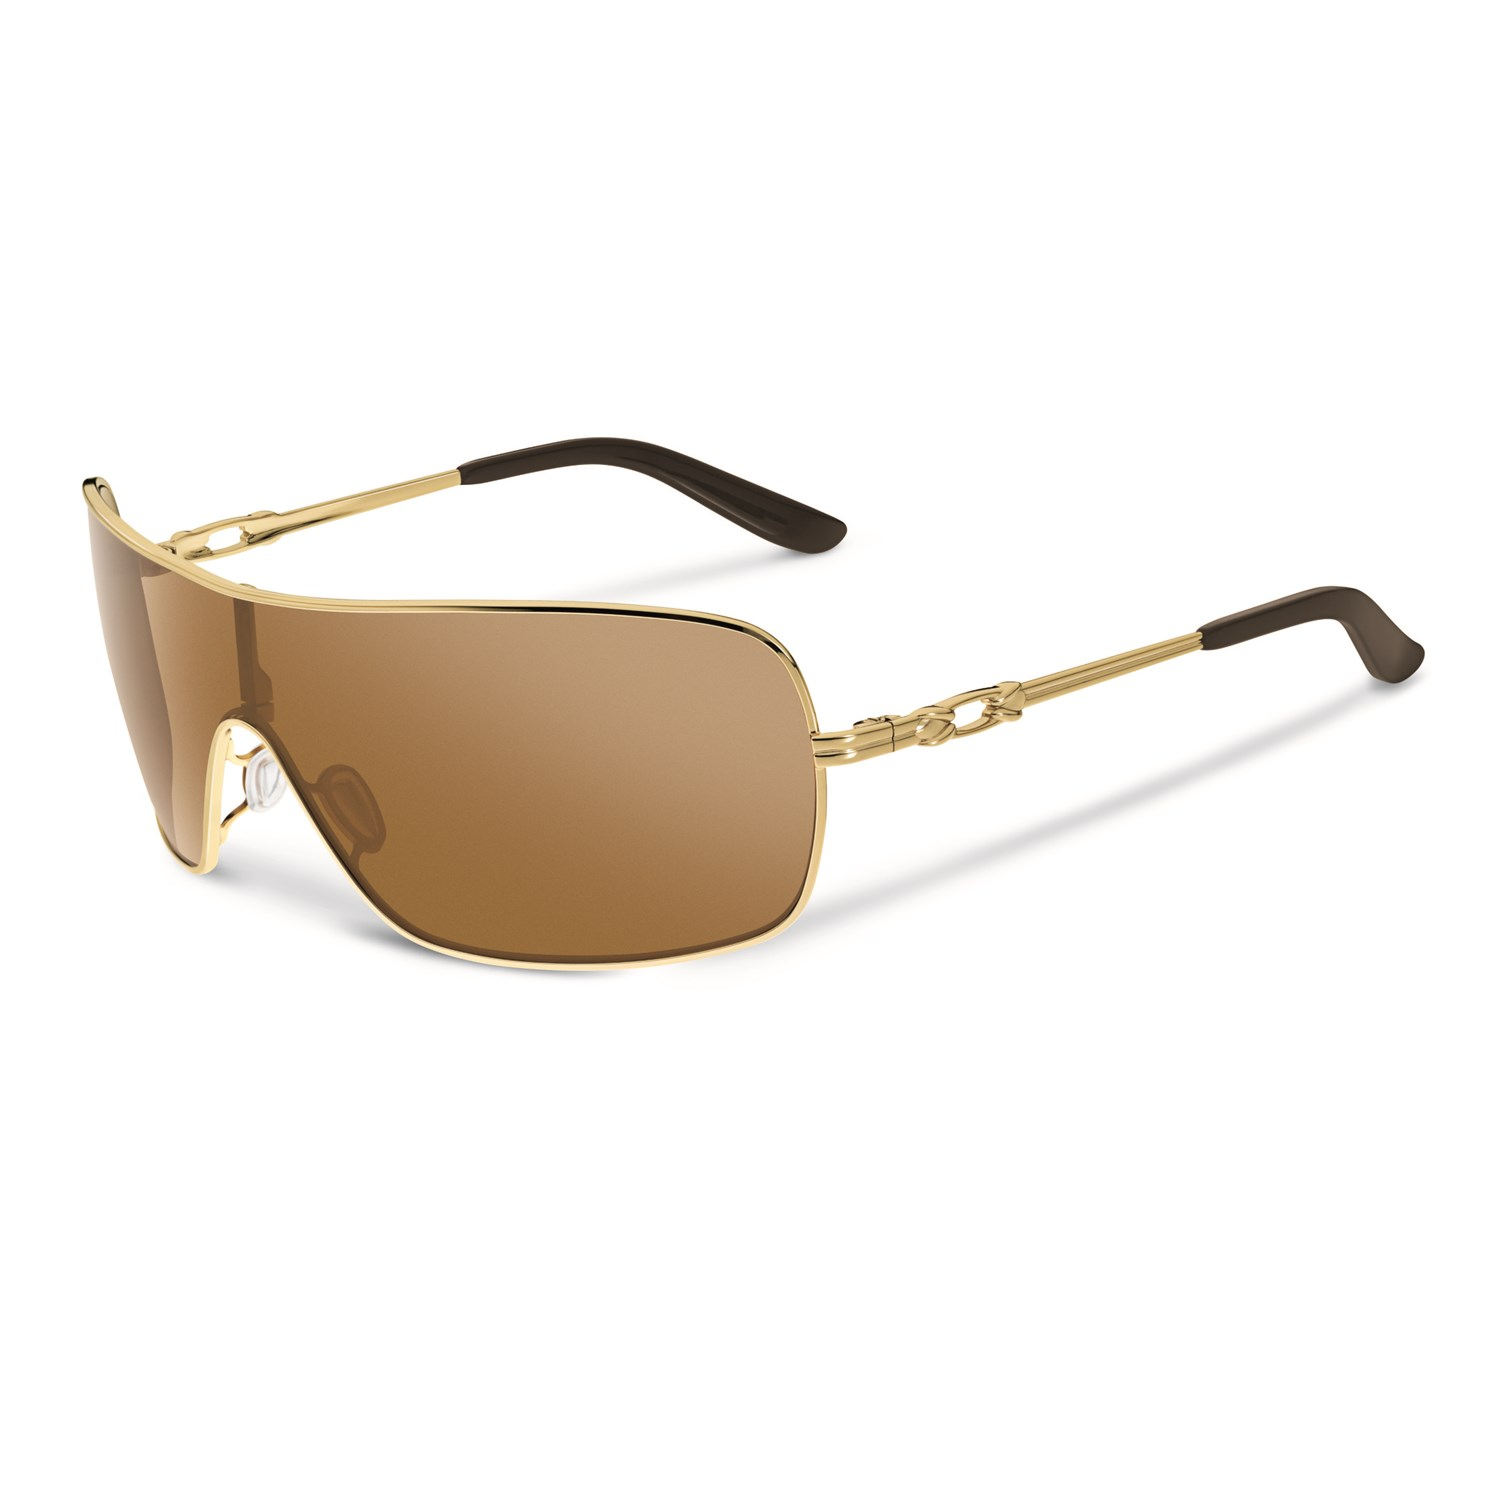 oakley sunglasses for womens  oakley distress sunglasses women s polished gold tungsten iridium